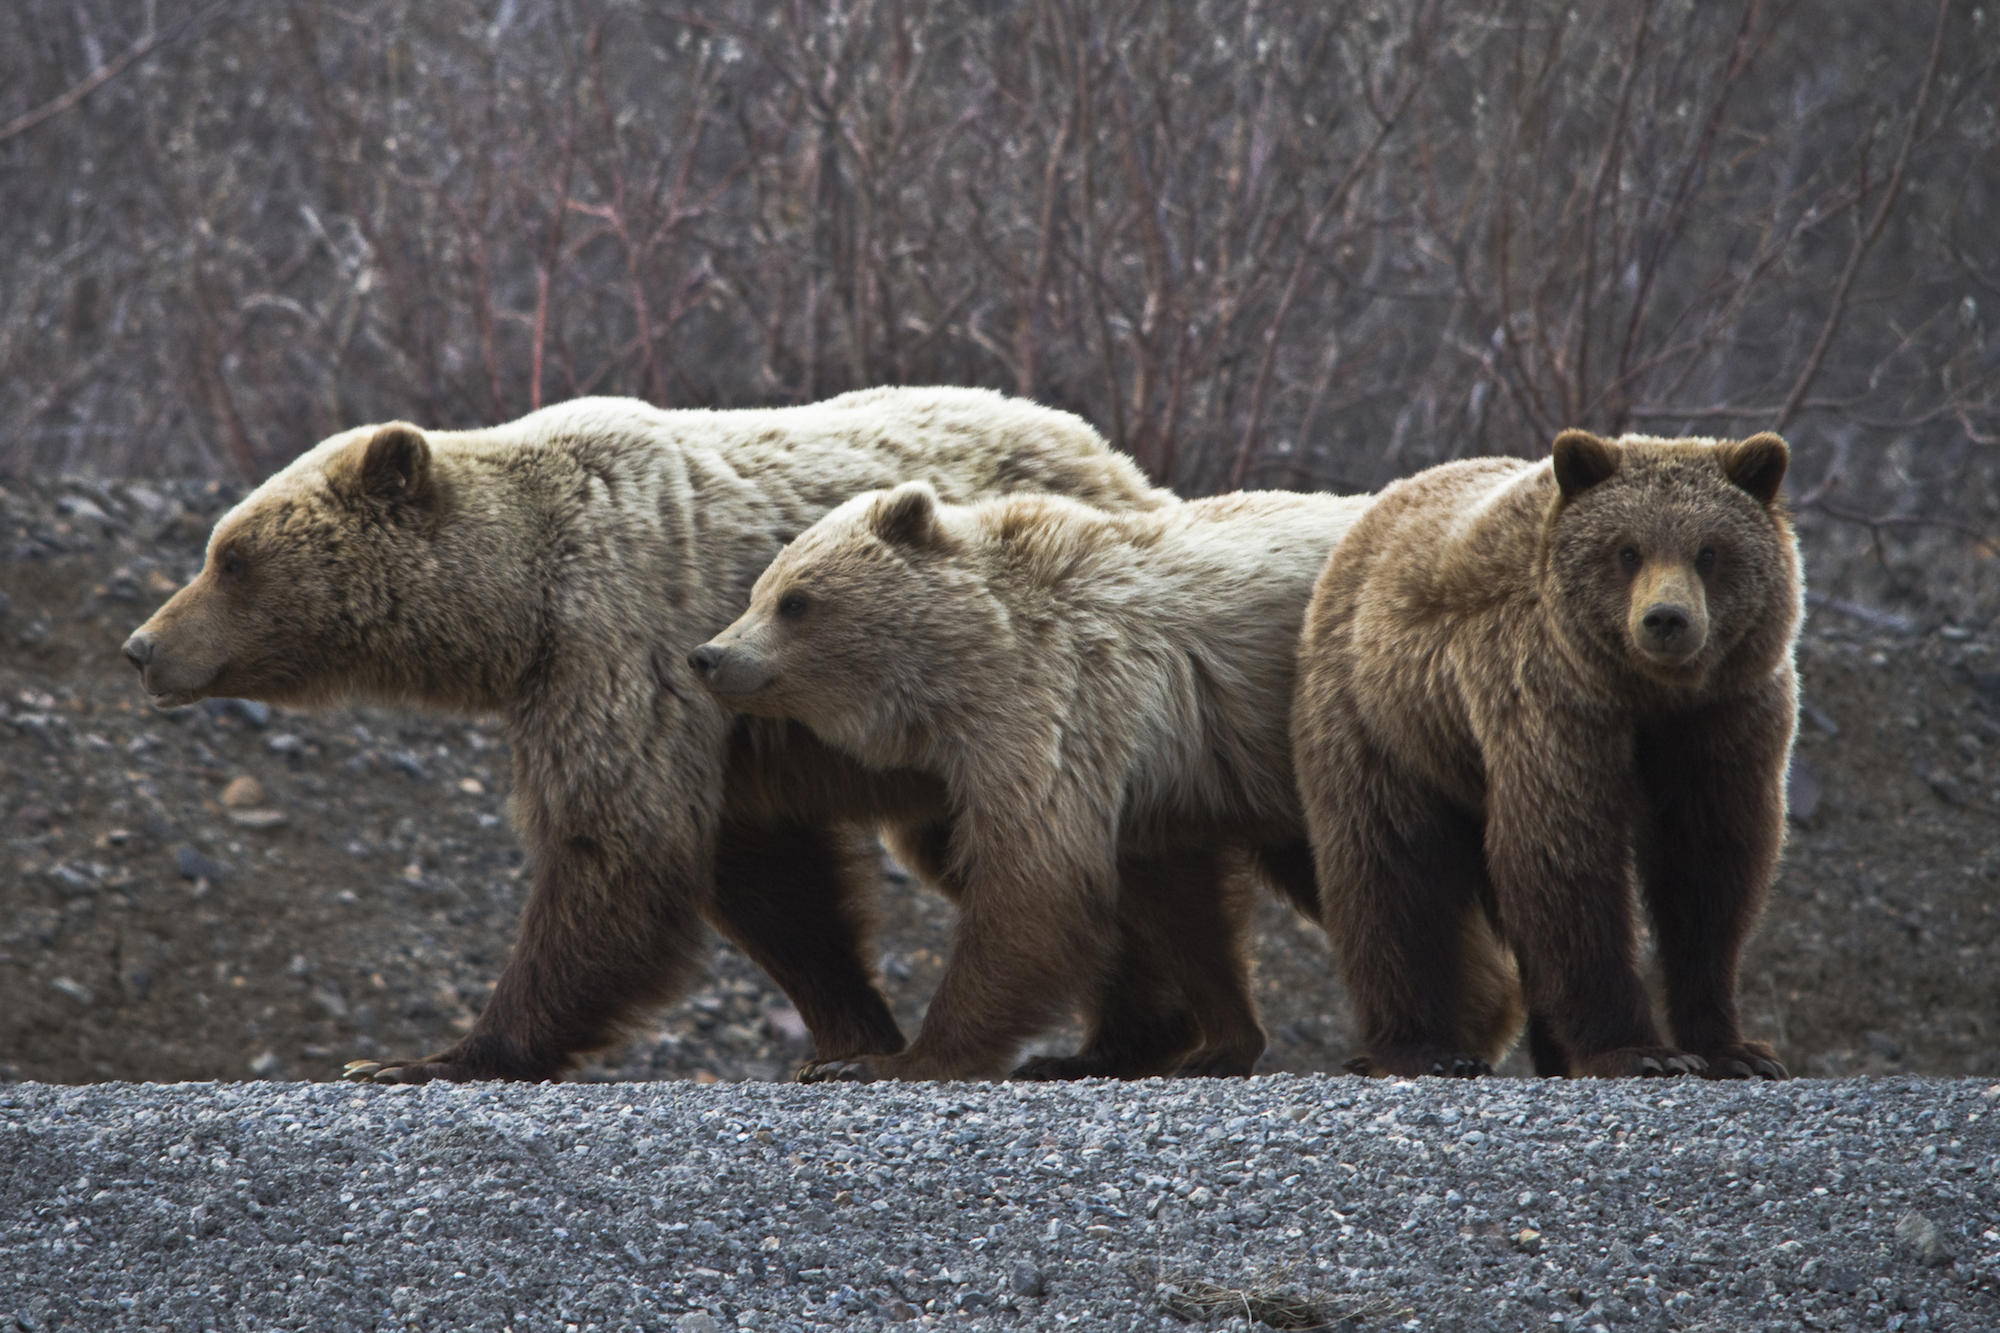 grizzly bears could make